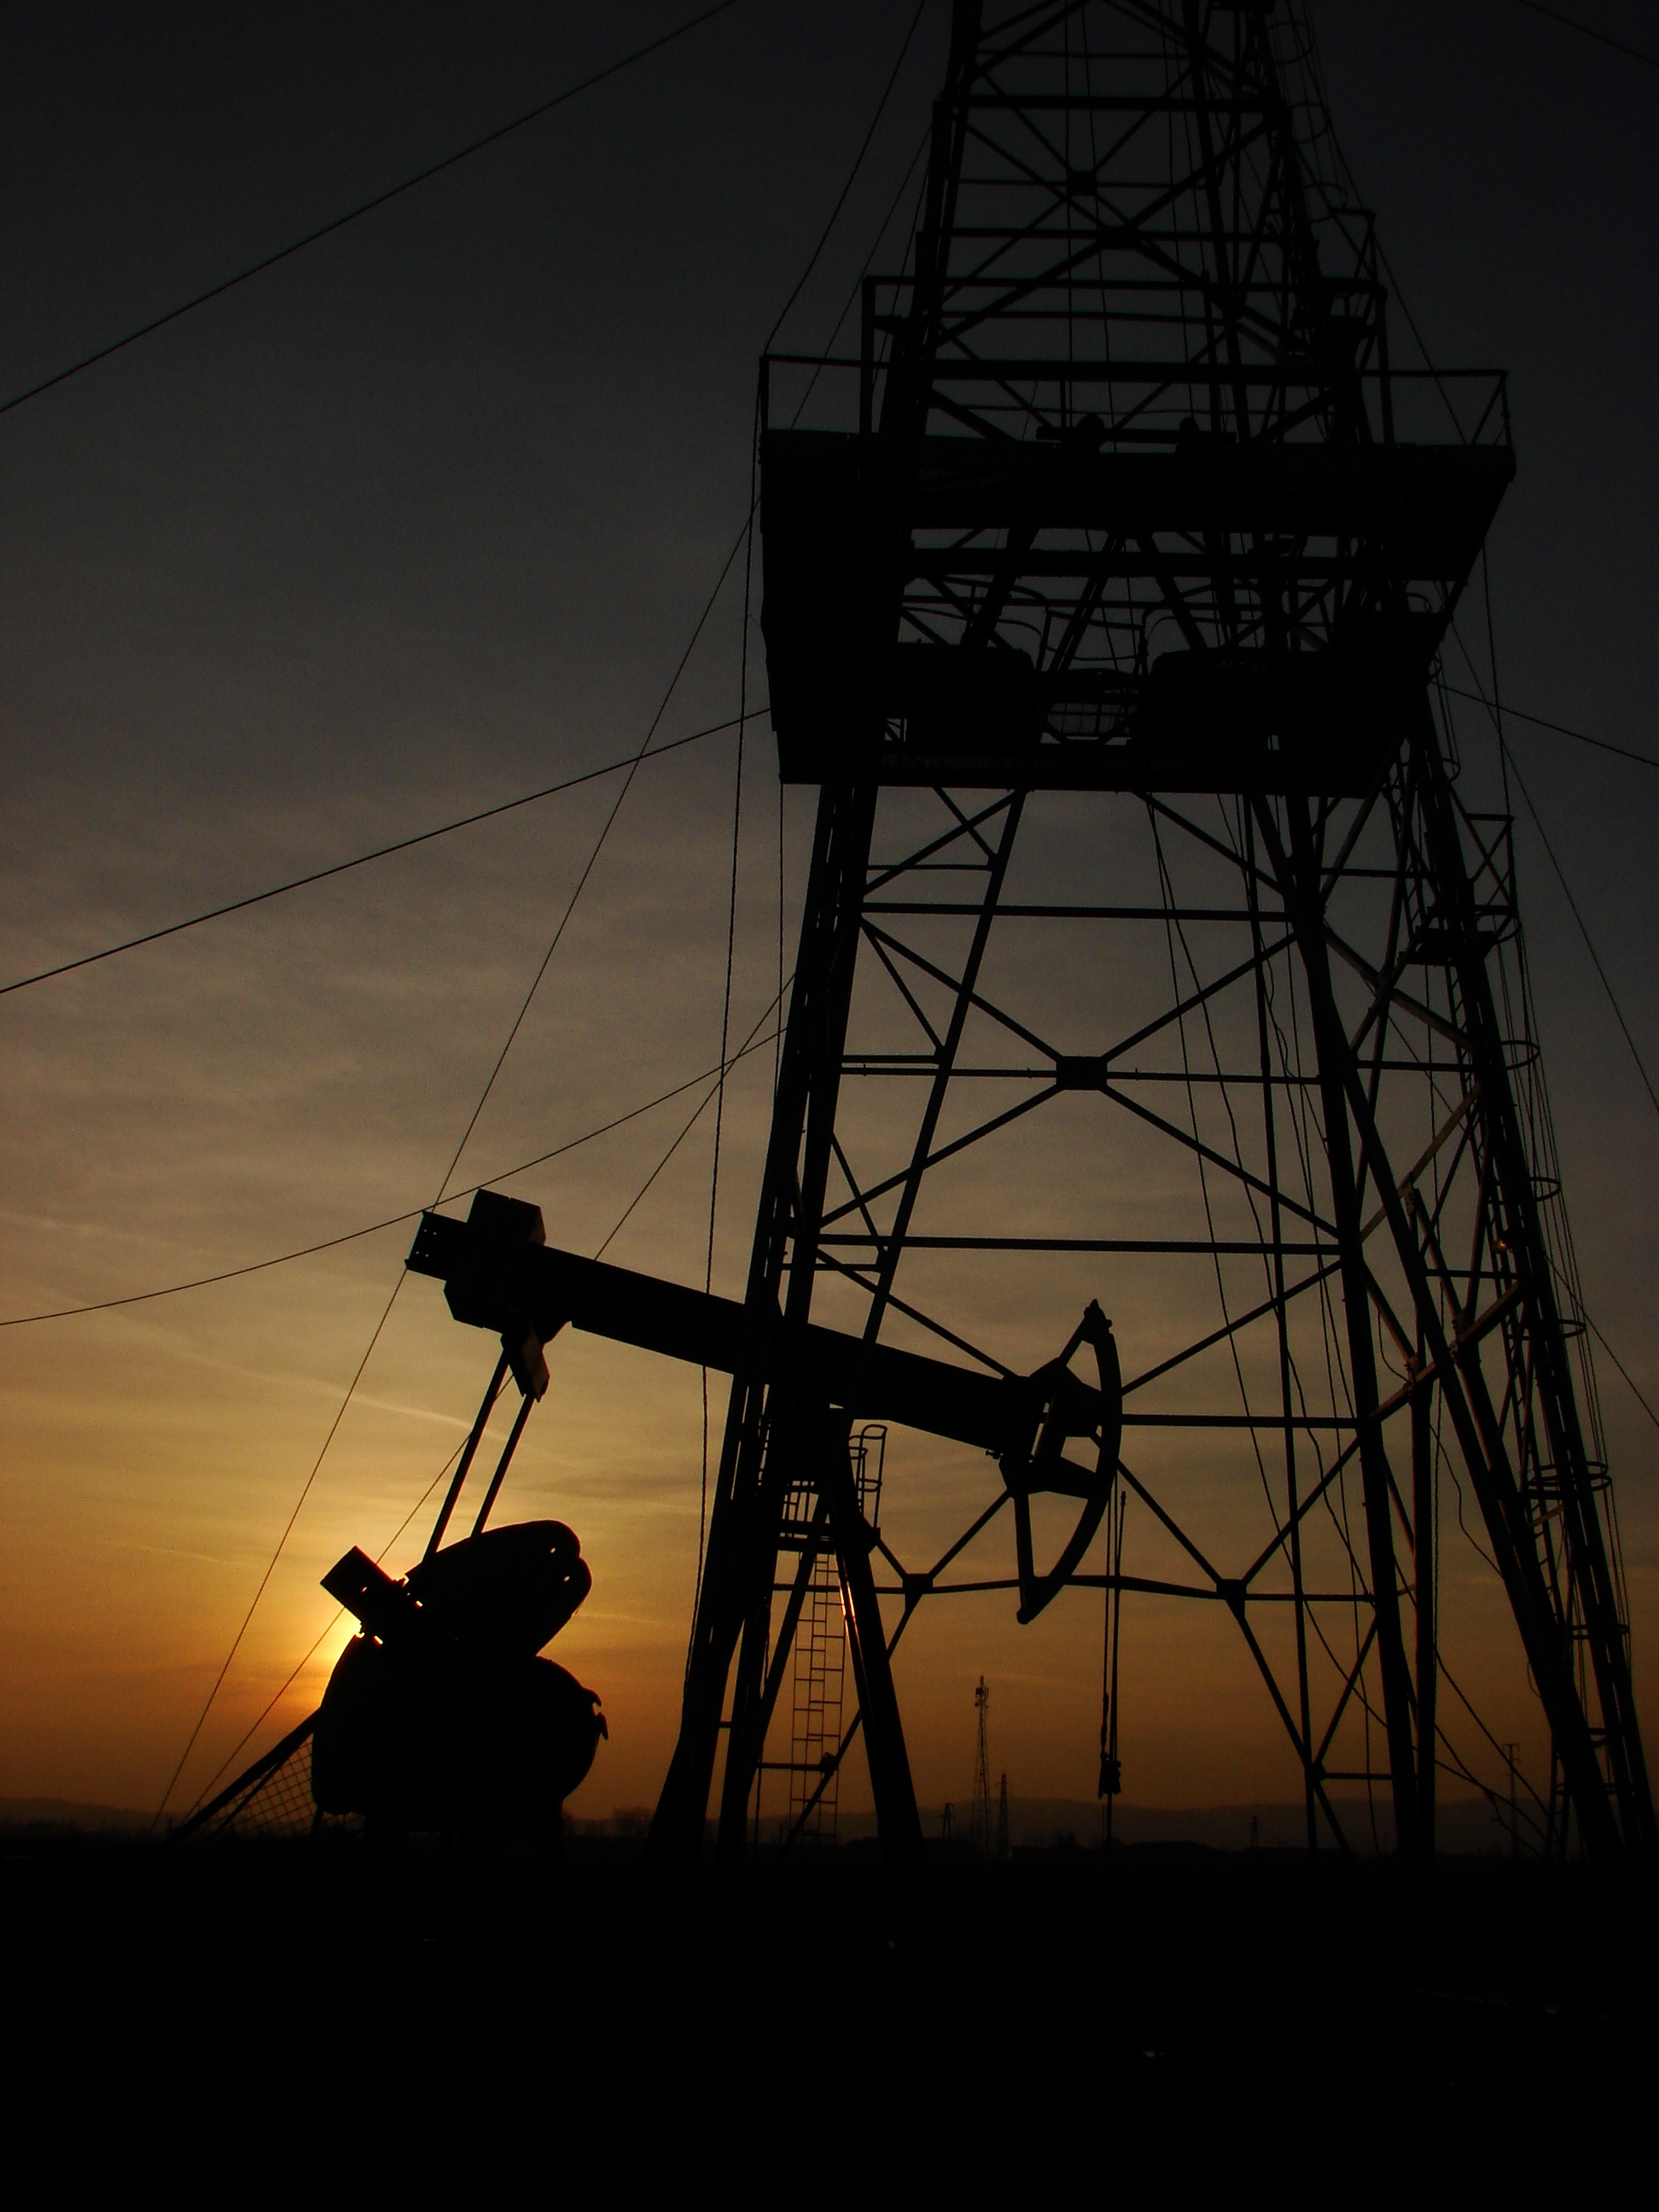 Rising oil prices could threaten global recovery